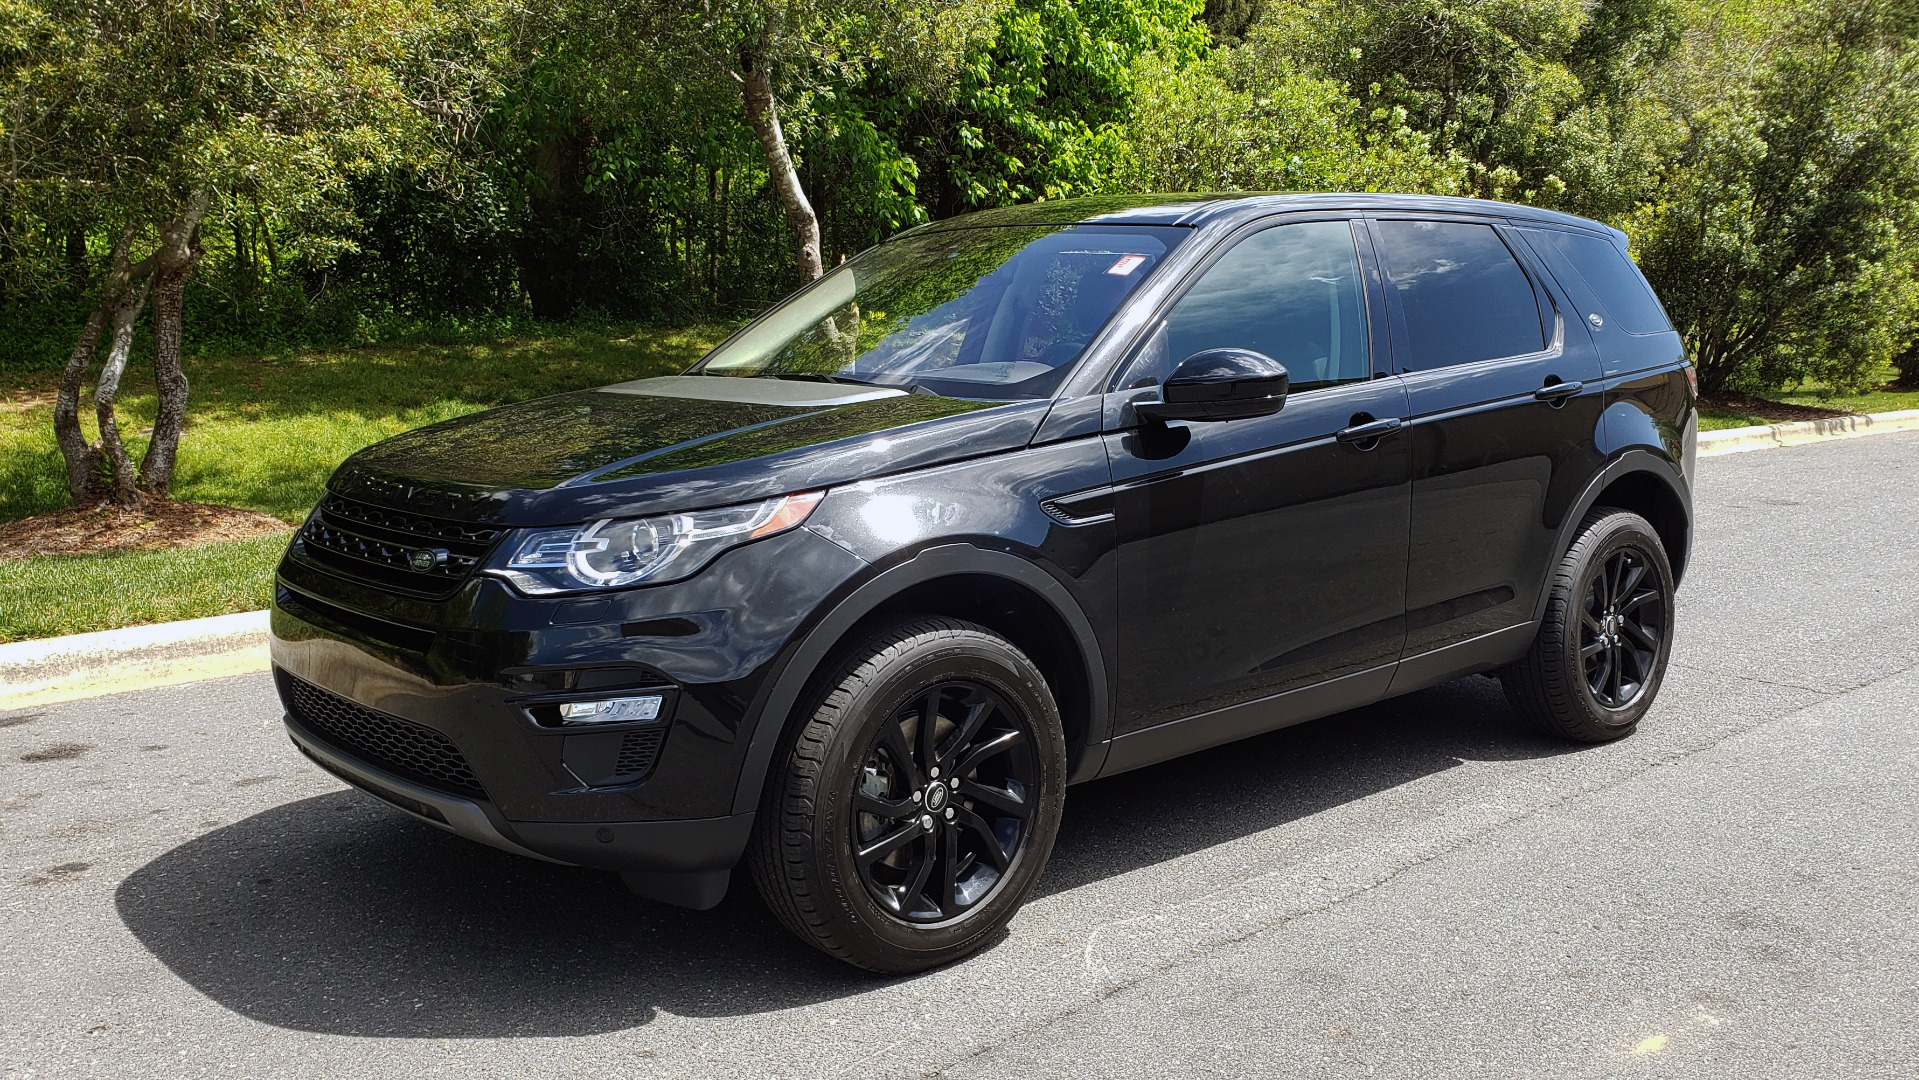 Used 2017 Land Rover DISCOVERY SPORT HSE / NAV / PANO-ROOF / REARVIEW / HTD STS / LANE DEPART for sale Sold at Formula Imports in Charlotte NC 28227 1